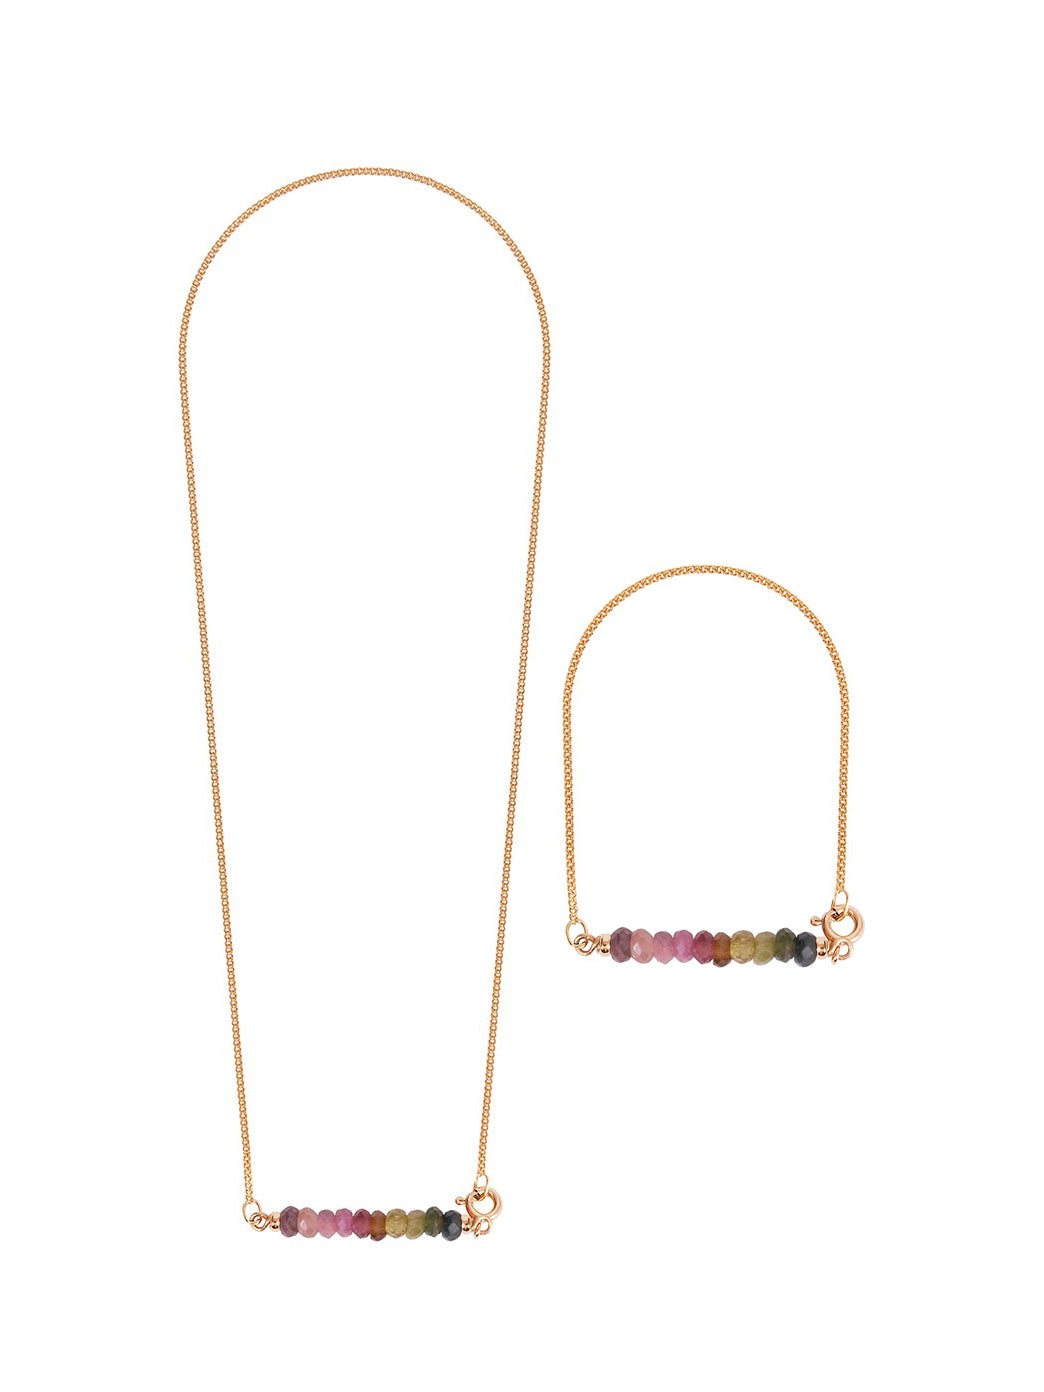 Fiorina Jewellery Gold Friendship Set